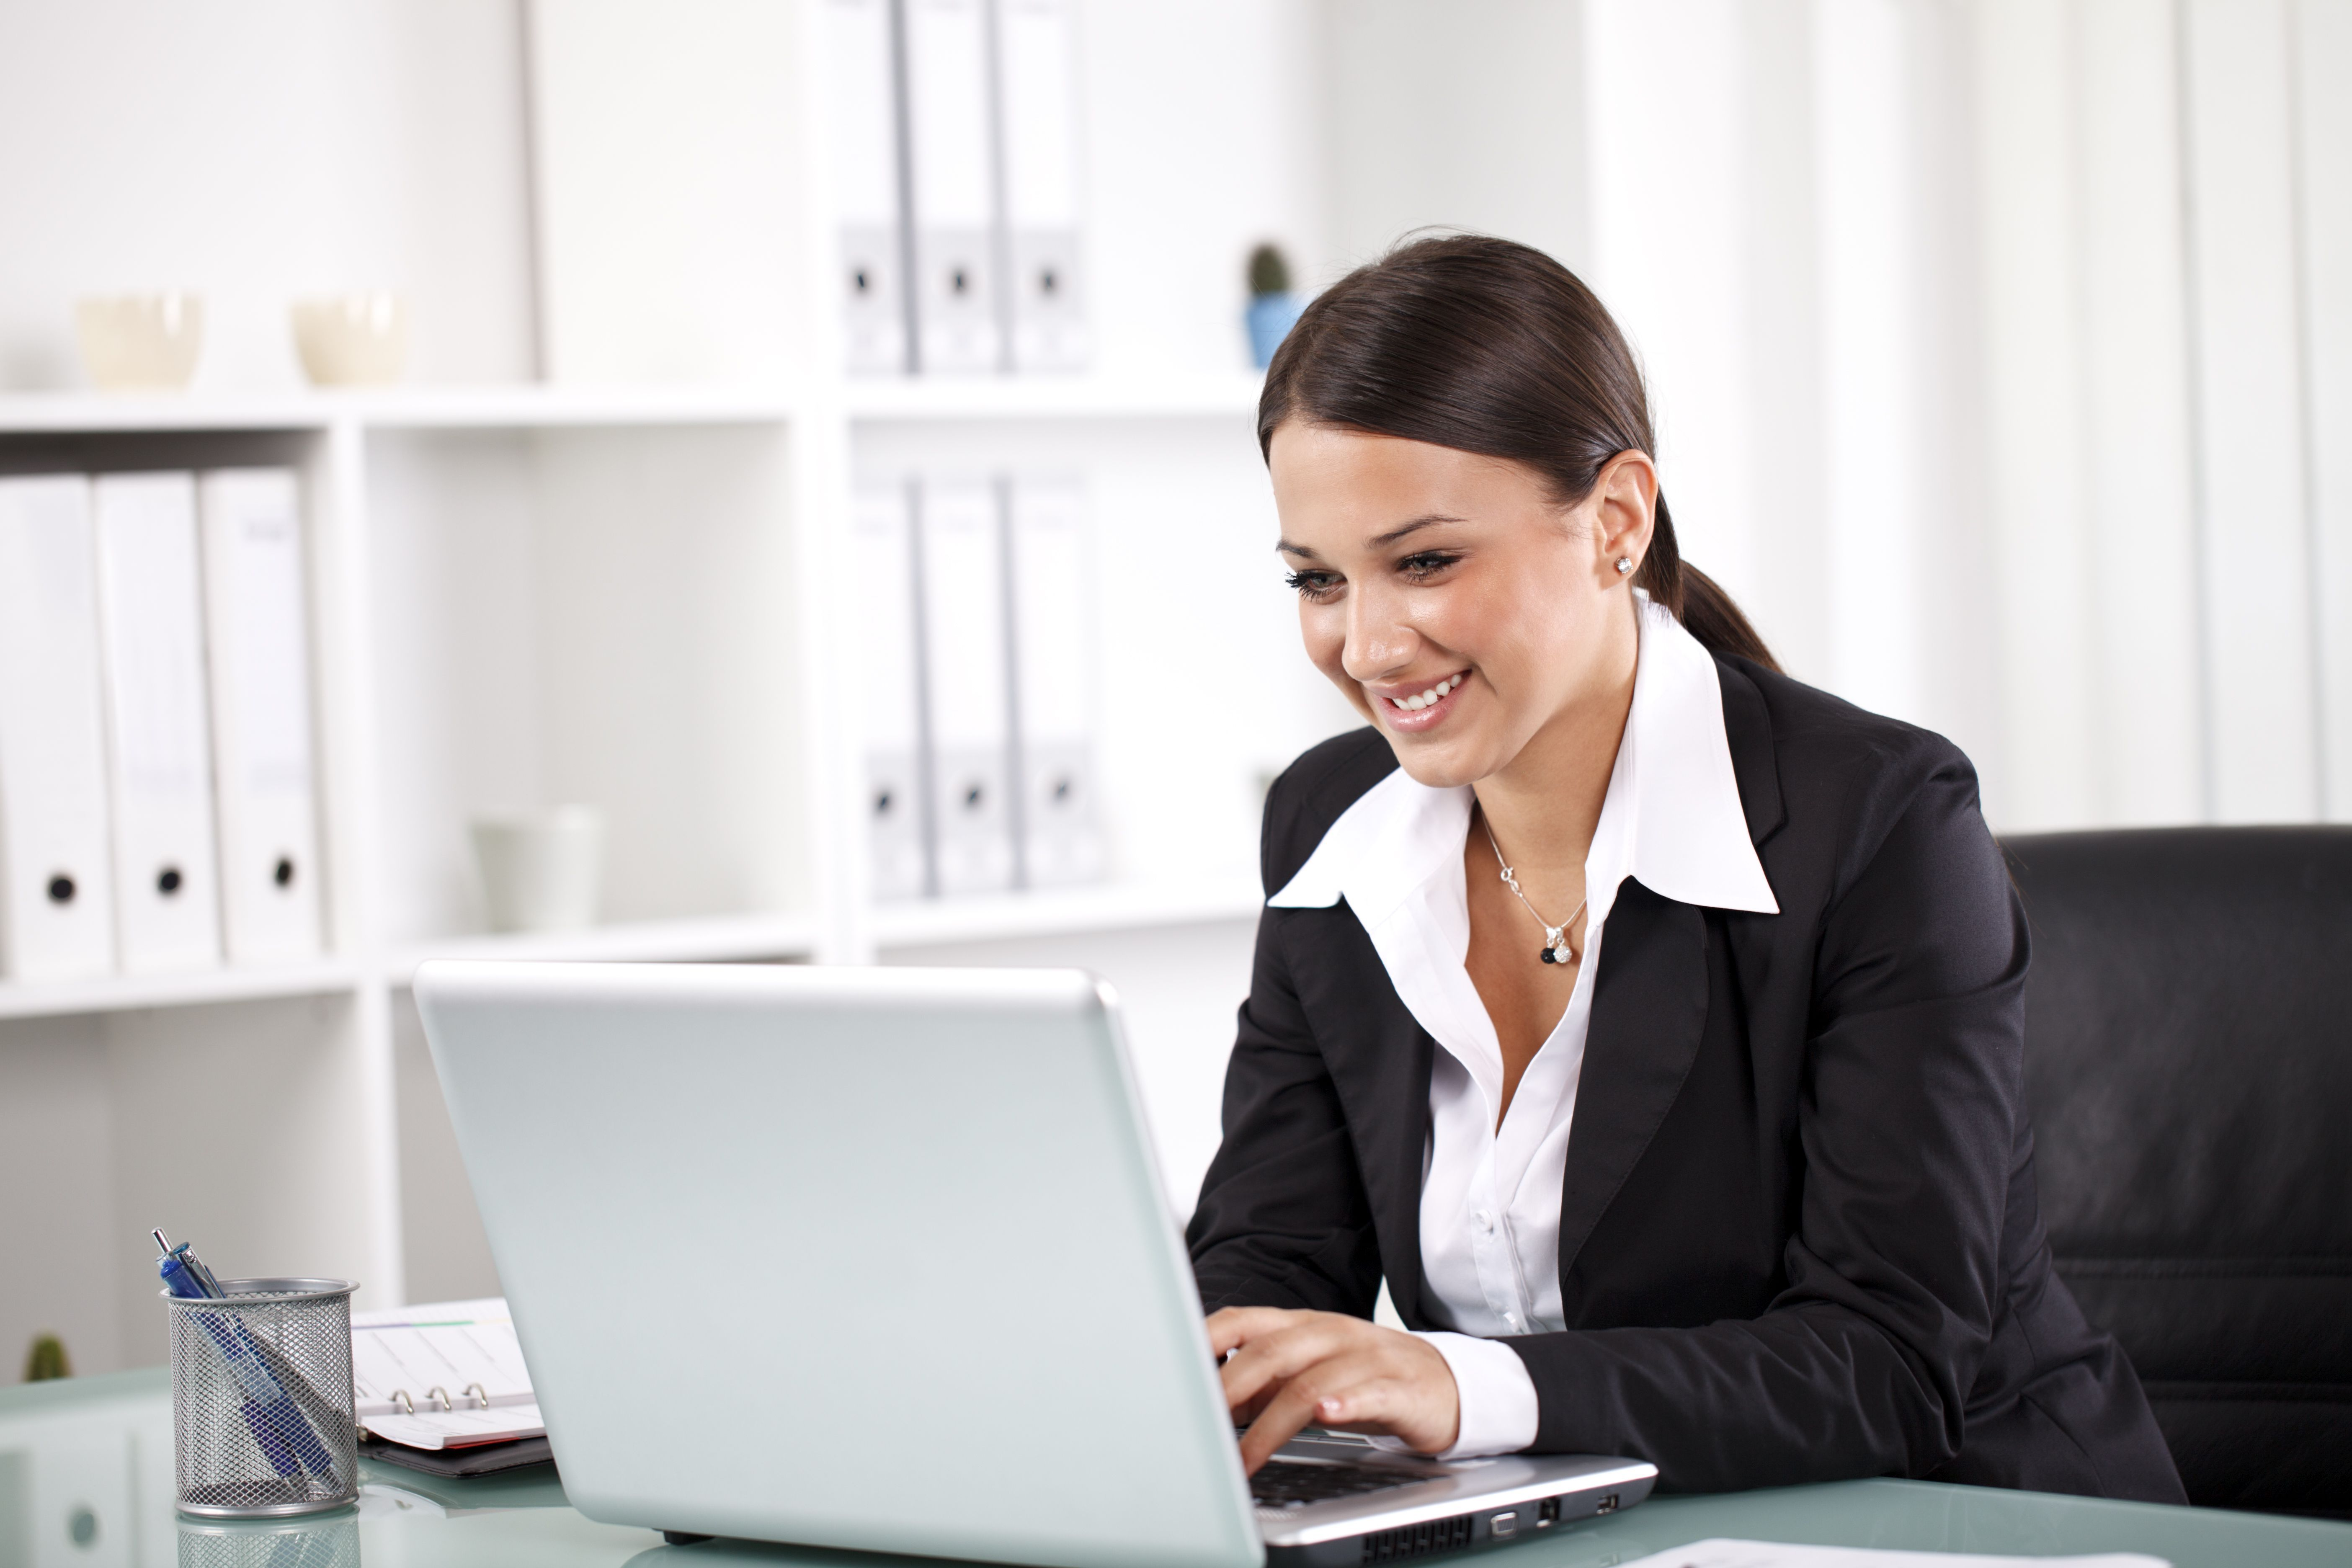 Resume cover letters ought to matter to employers. They